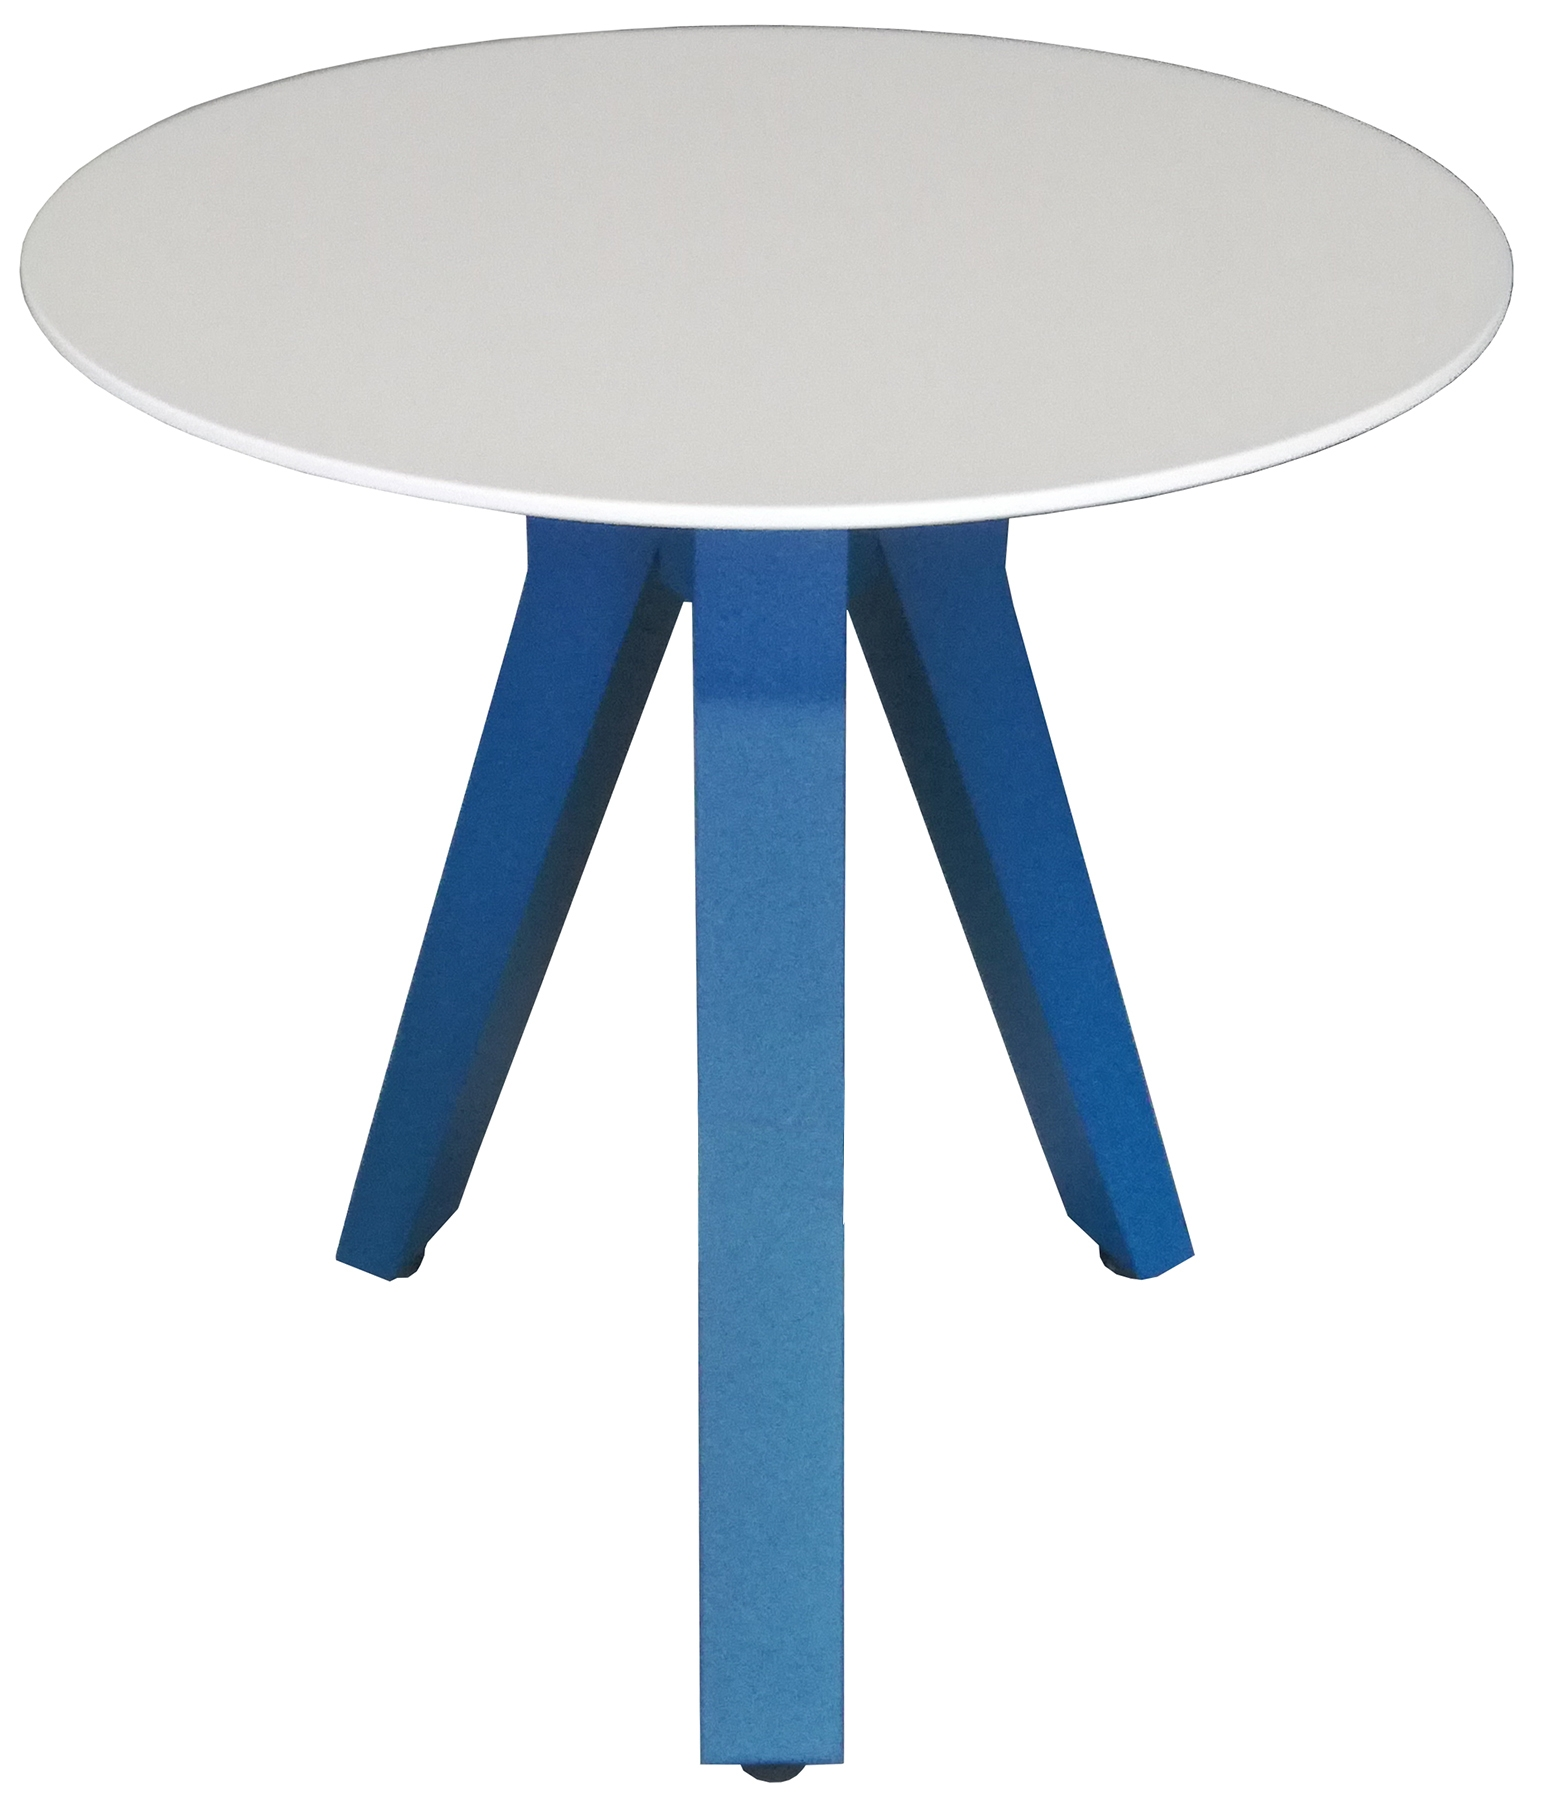 vieques kettal high side table milia blue outdoor accent hairpin round bronze coffee half circle kitchen unfinished dining iron target tables and end sofa with matching cool lamps